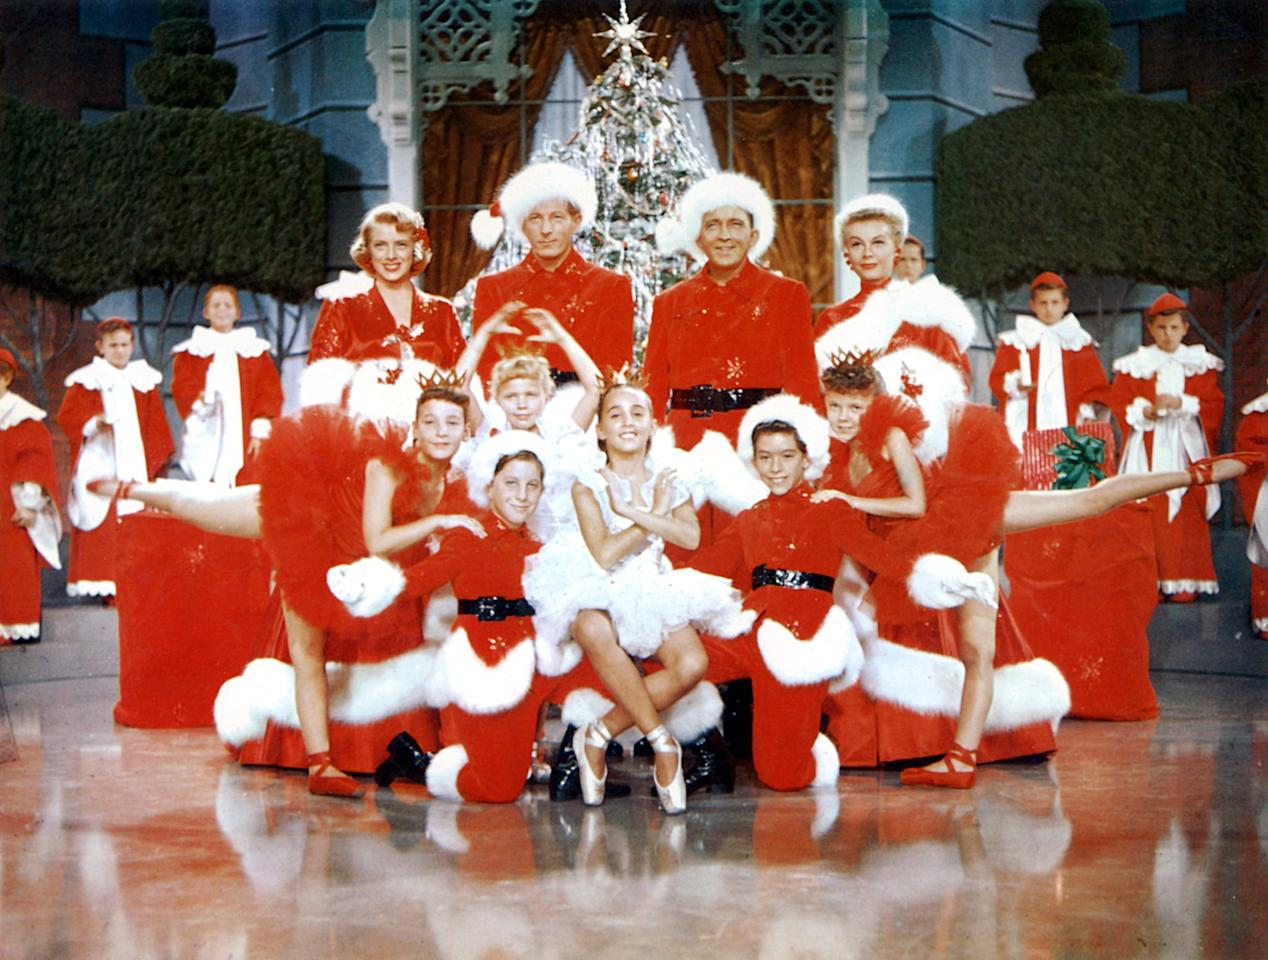 "<p>Each year, you hear Bing Crosby crooning on the radio, so why not watch him in his wonderfully lavish Christmas rom-com musical? In <strong>White Christmas</strong>, two war buddies turned successful producers fall for a pair of sisters. One day, they stay at their former commanding officer's lodge and learn that it's about to close, so they set out to do a special performance in order to save it.</p> <p><a href=""http://www.netflix.com/title/60003082"" target=""_blank"" class=""ga-track"" data-ga-category=""Related"" data-ga-label=""http://www.netflix.com/title/60003082"" data-ga-action=""In-Line Links"">Watch <b>White Christmas</b> on Netflix</a>.</p>"